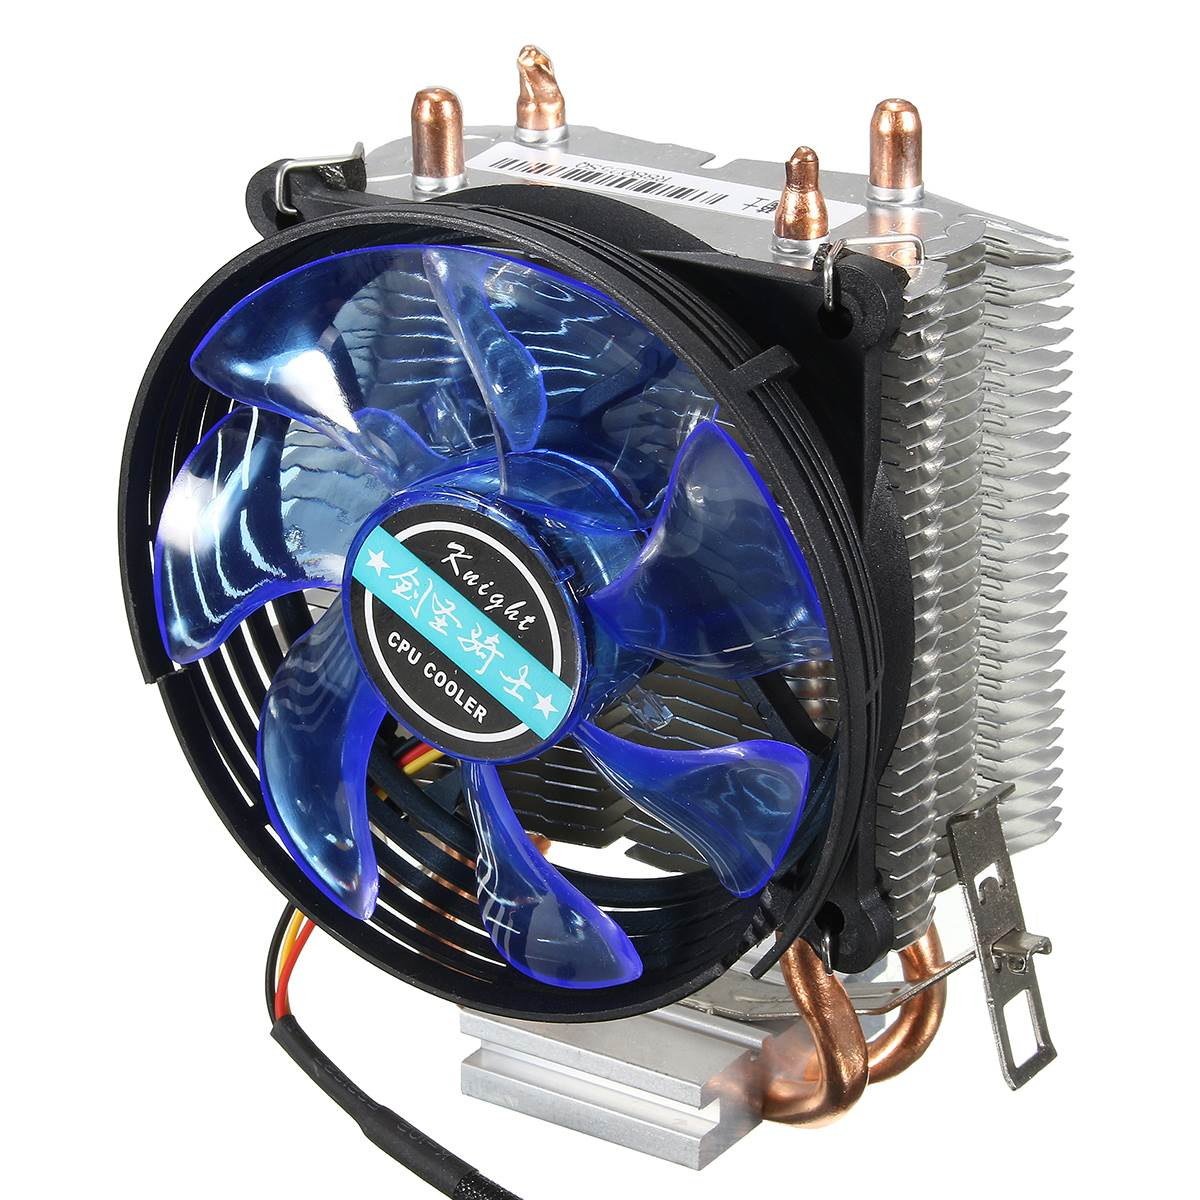 95x95x25mm LED Cooler Cpu Fan Heatsink Copper for Intel LGA775/1156/1155 for AMD AM2/AM2+/AM3 4 heatpipe 130w red cpu cooler 3 pin fan heatsink for intel lga2011 amd am2 754 l059 new hot